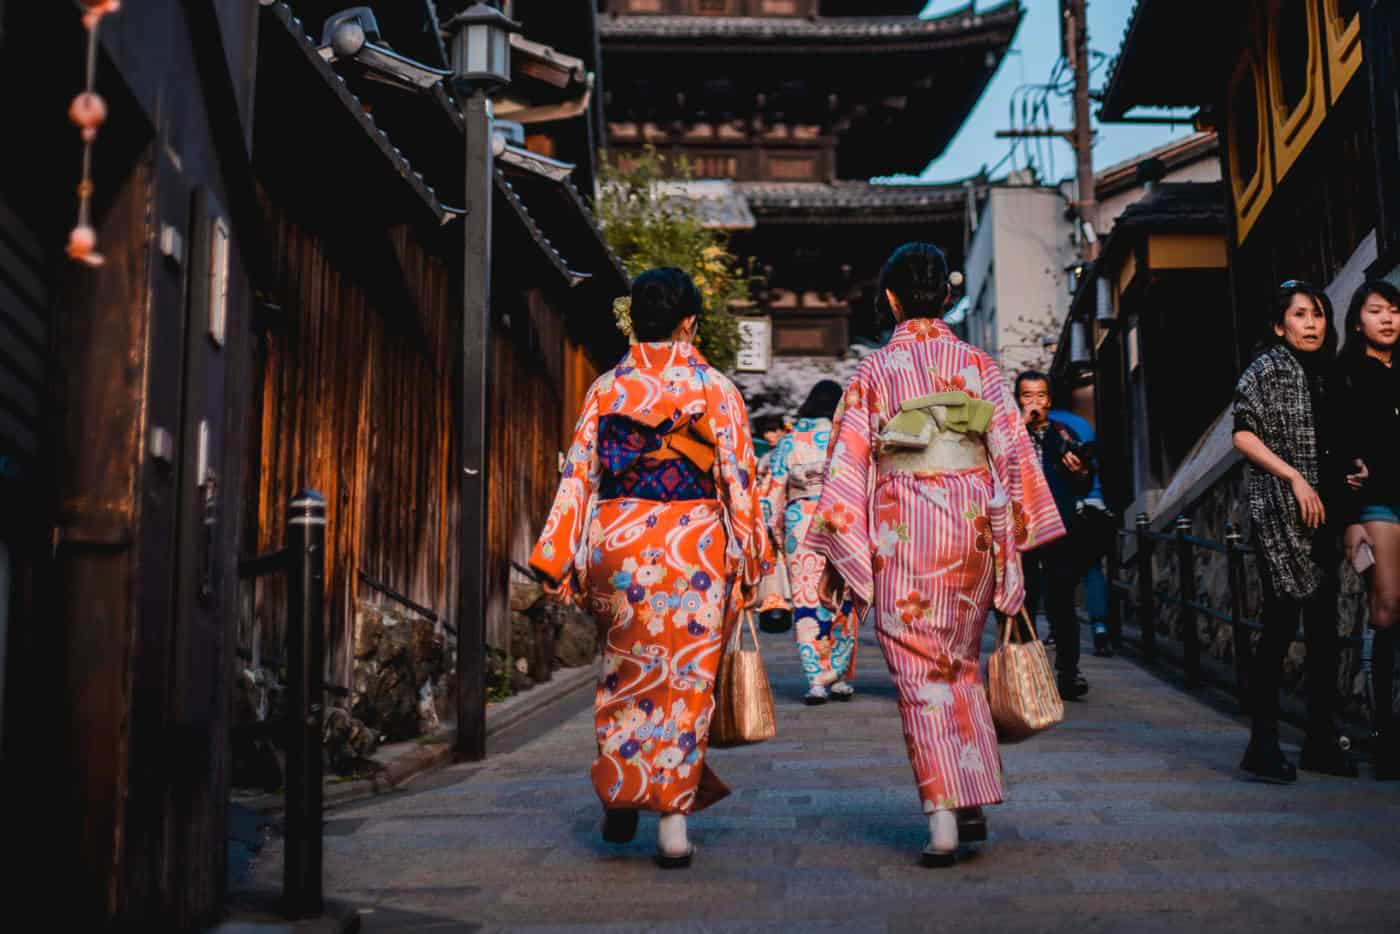 Two women dressed in Japanese kimonos walking down a street in Gion Kyoto